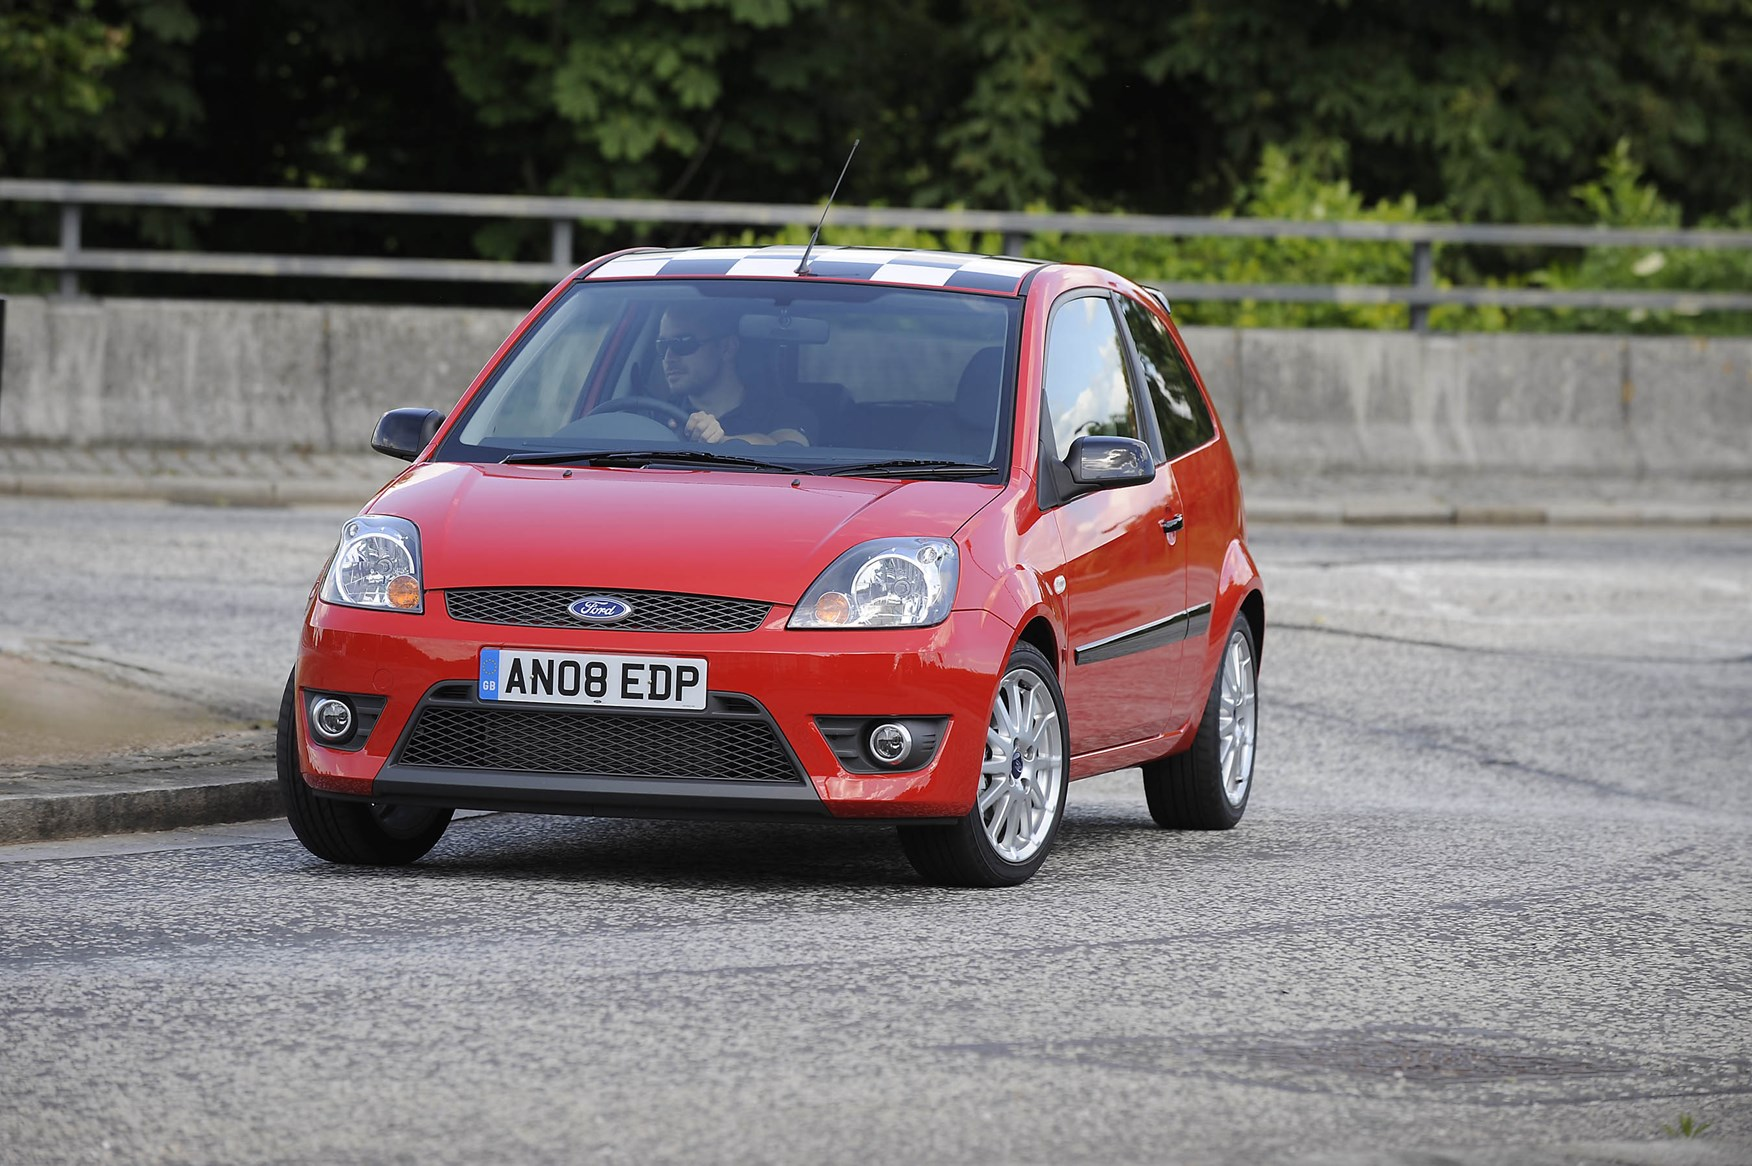 View all images of the ford fiesta 02 08